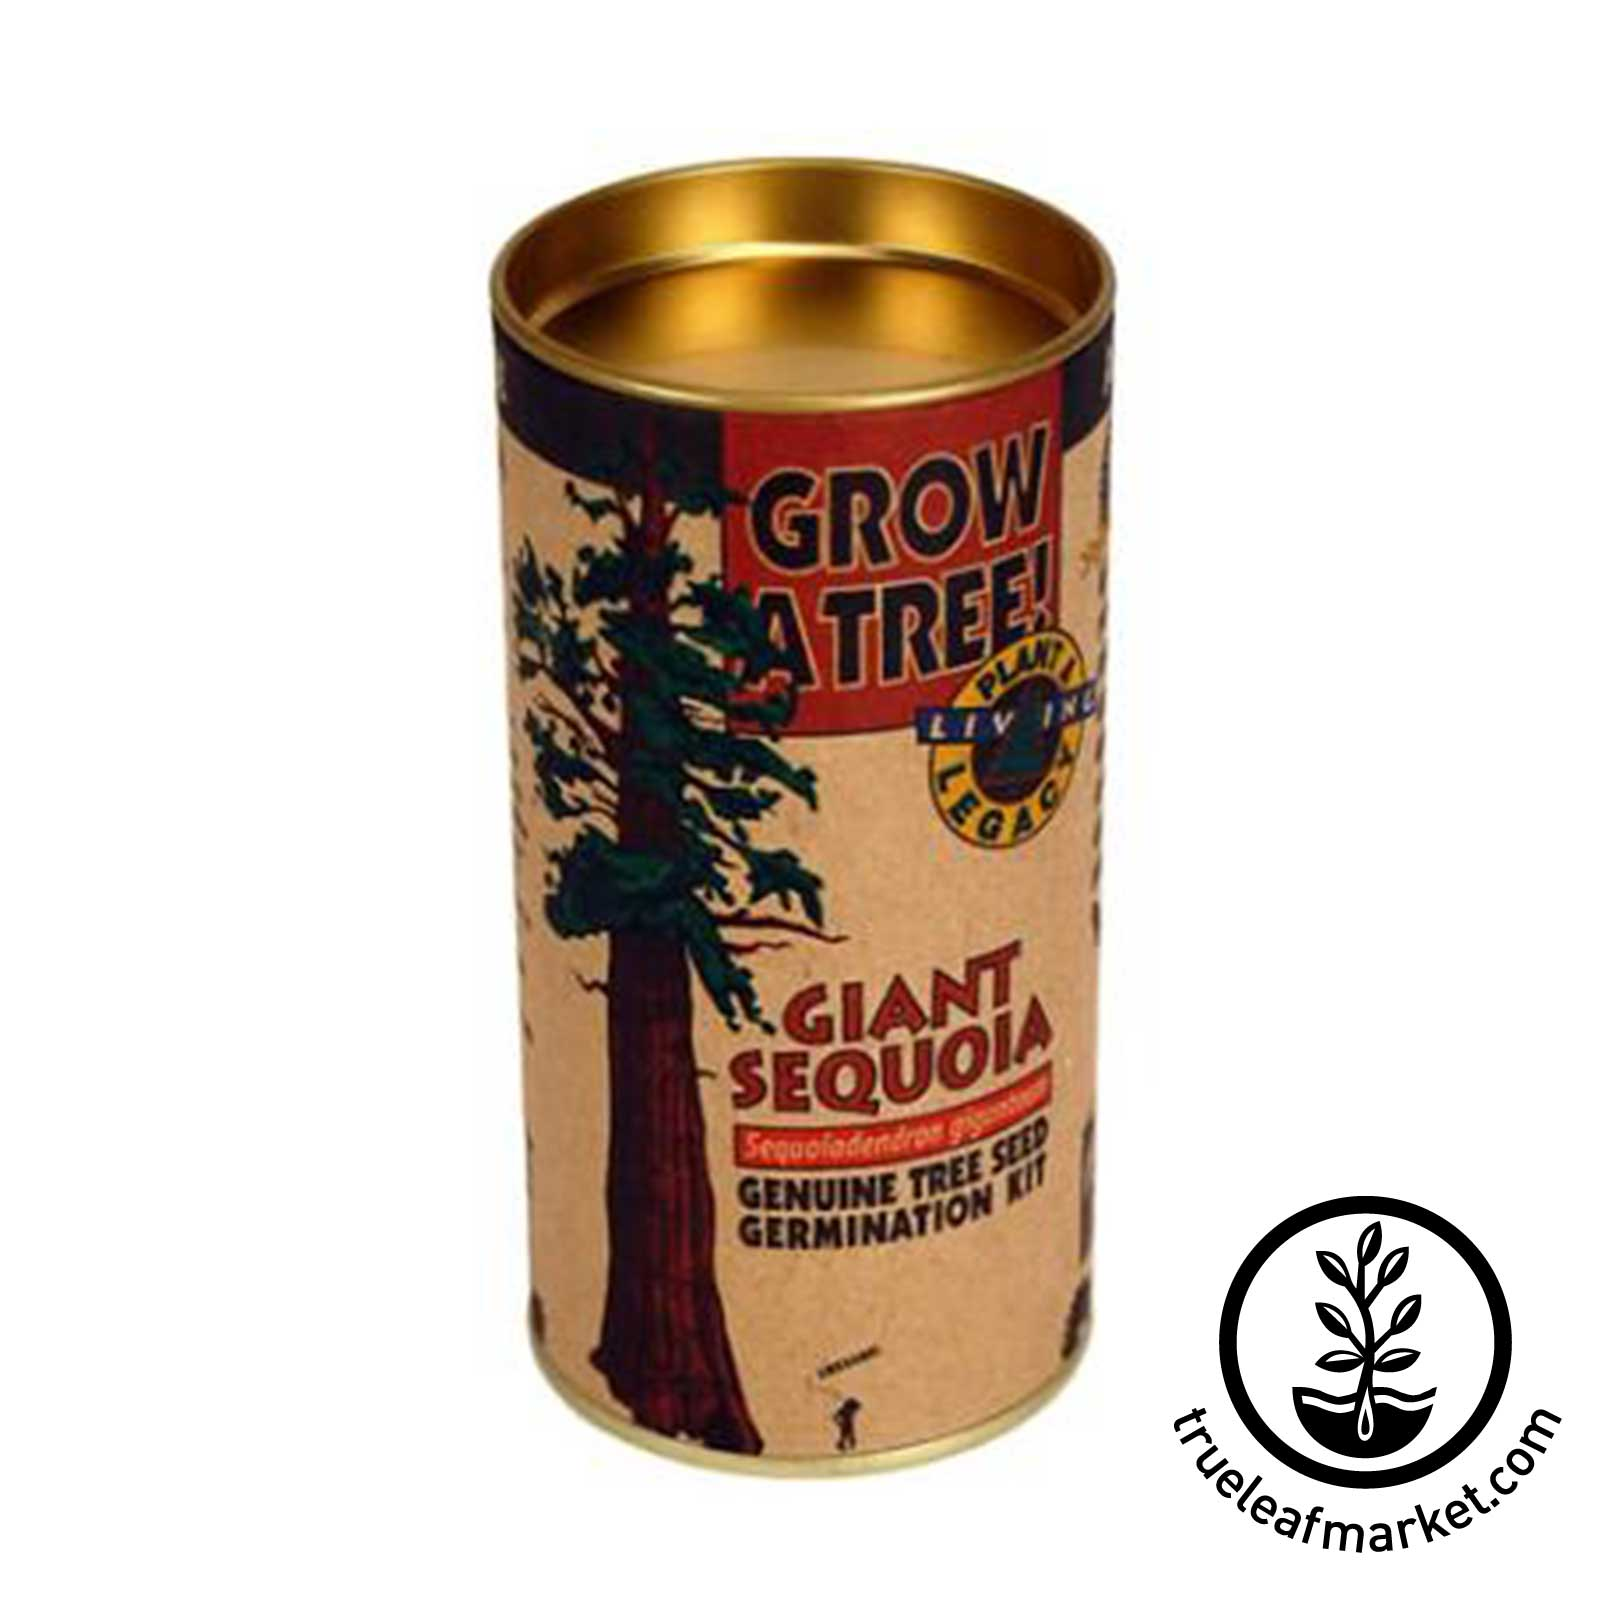 Giant Sequoia Tree Kit tree, kit, trees, giant, sequoia, seed